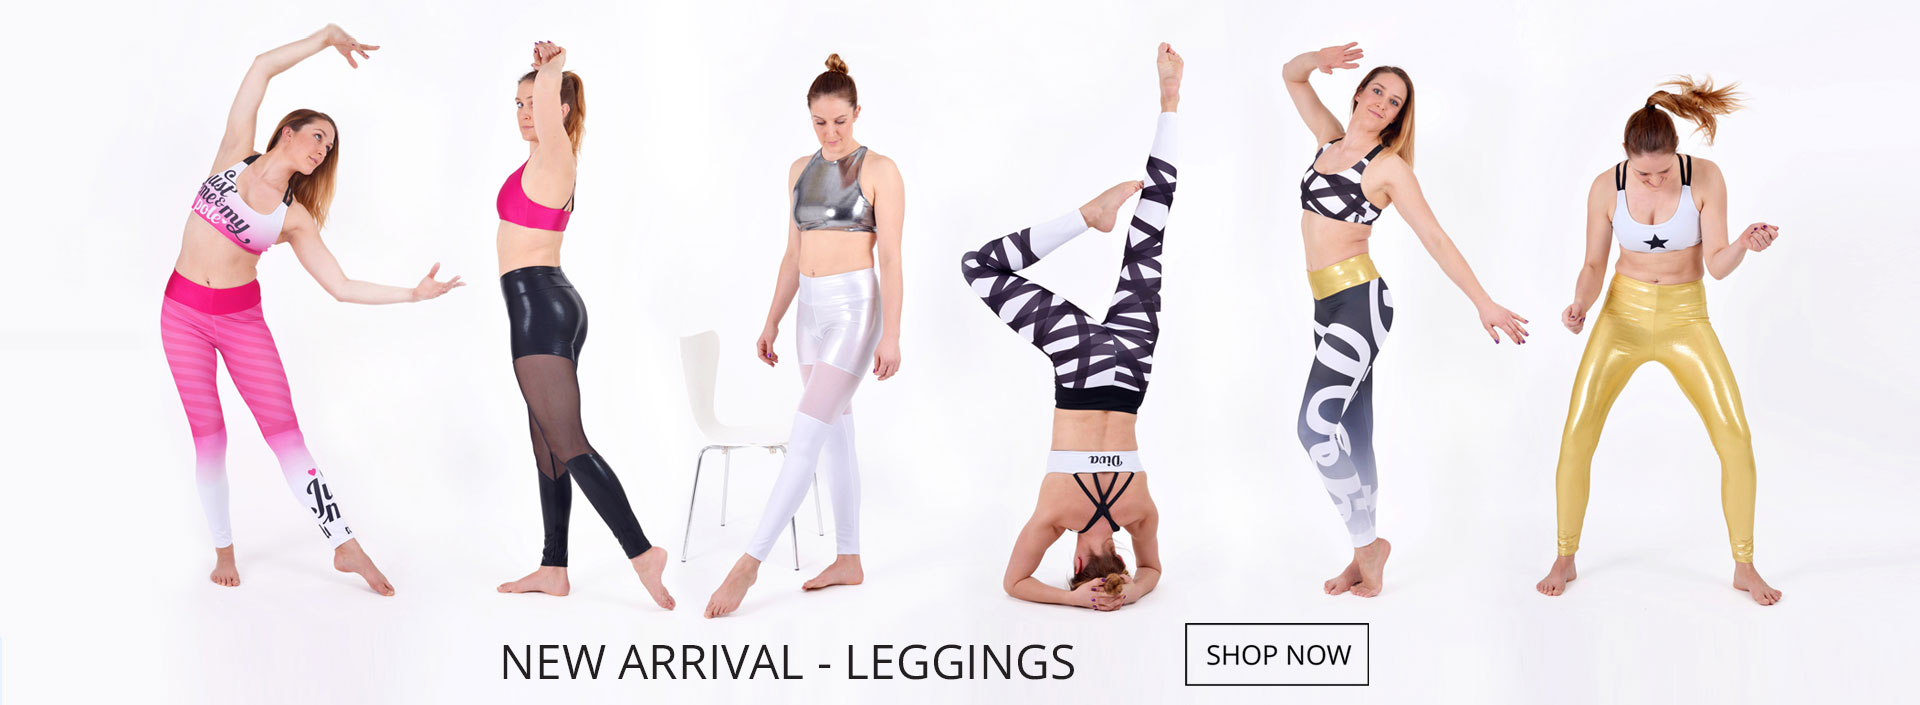 boomkats-pole-dance-wear-leggings